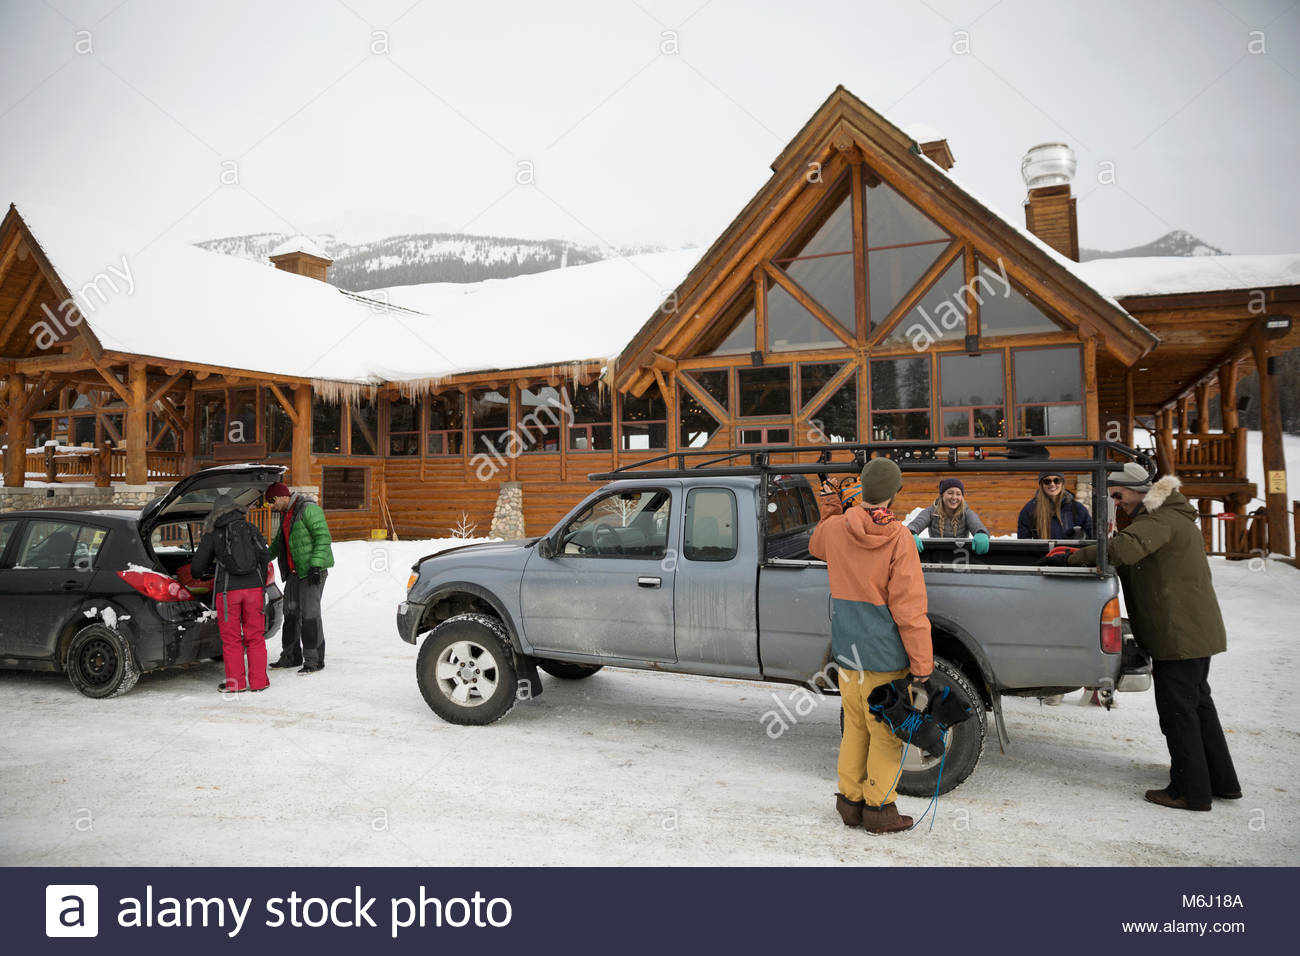 Friends unloading snowboarding and skiing equipment from car and truck at snowy ski resort - Stock Image